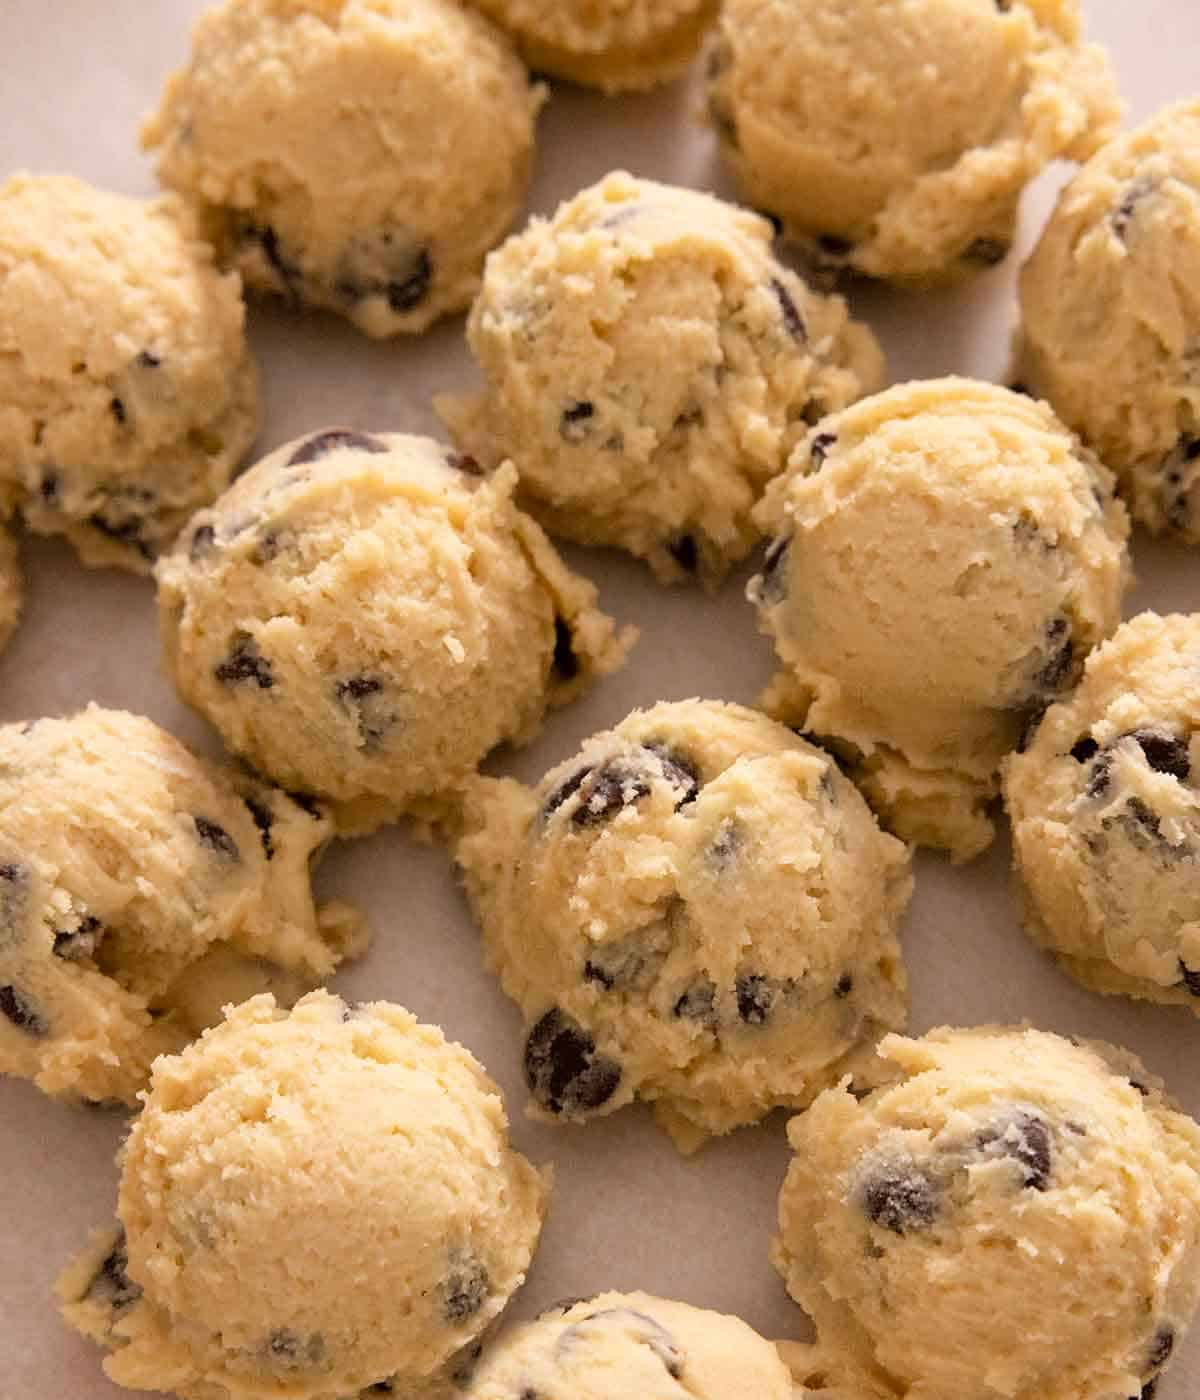 Multiple scoops of raw cookie dough on a lined sheet pan.